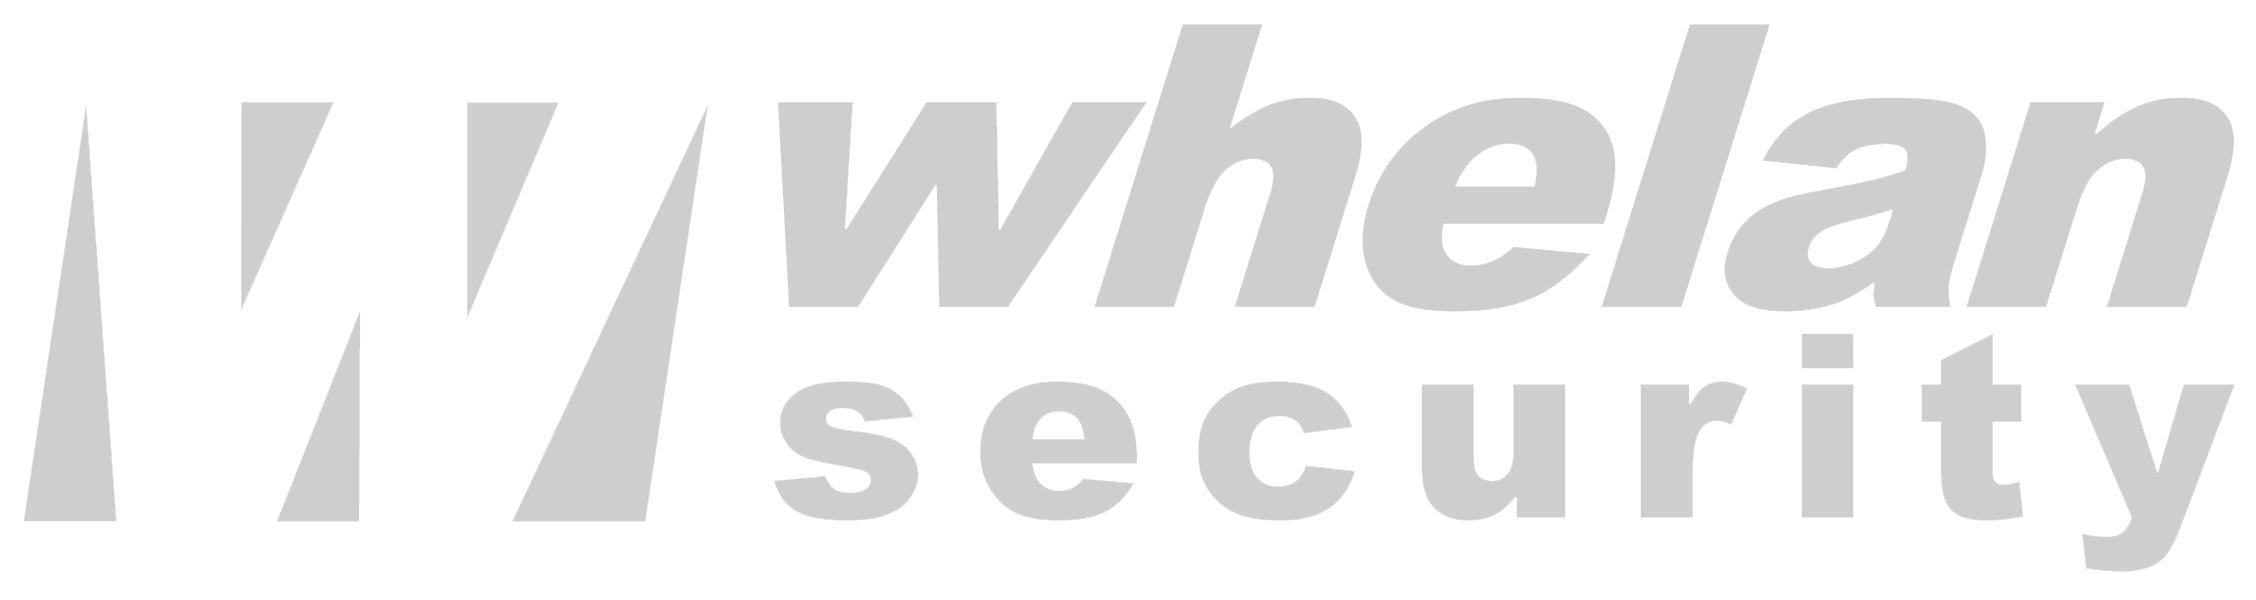 Whelan-Security logo